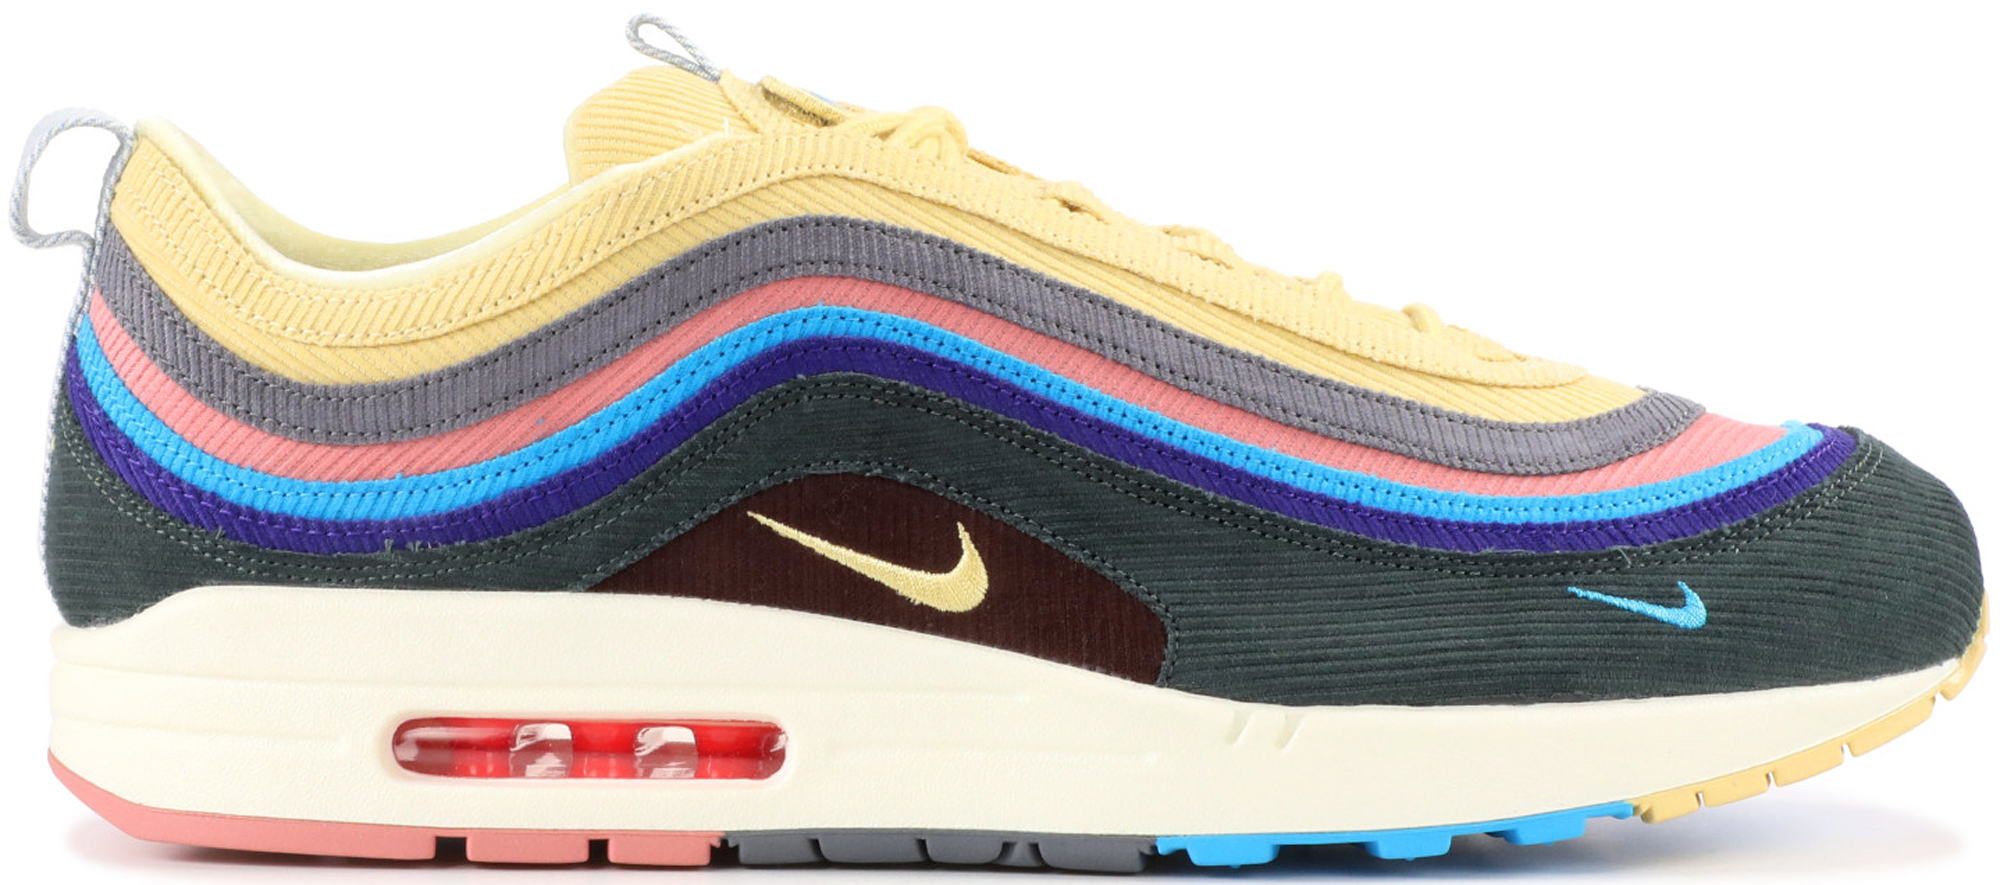 nike air max 1/97 for sale